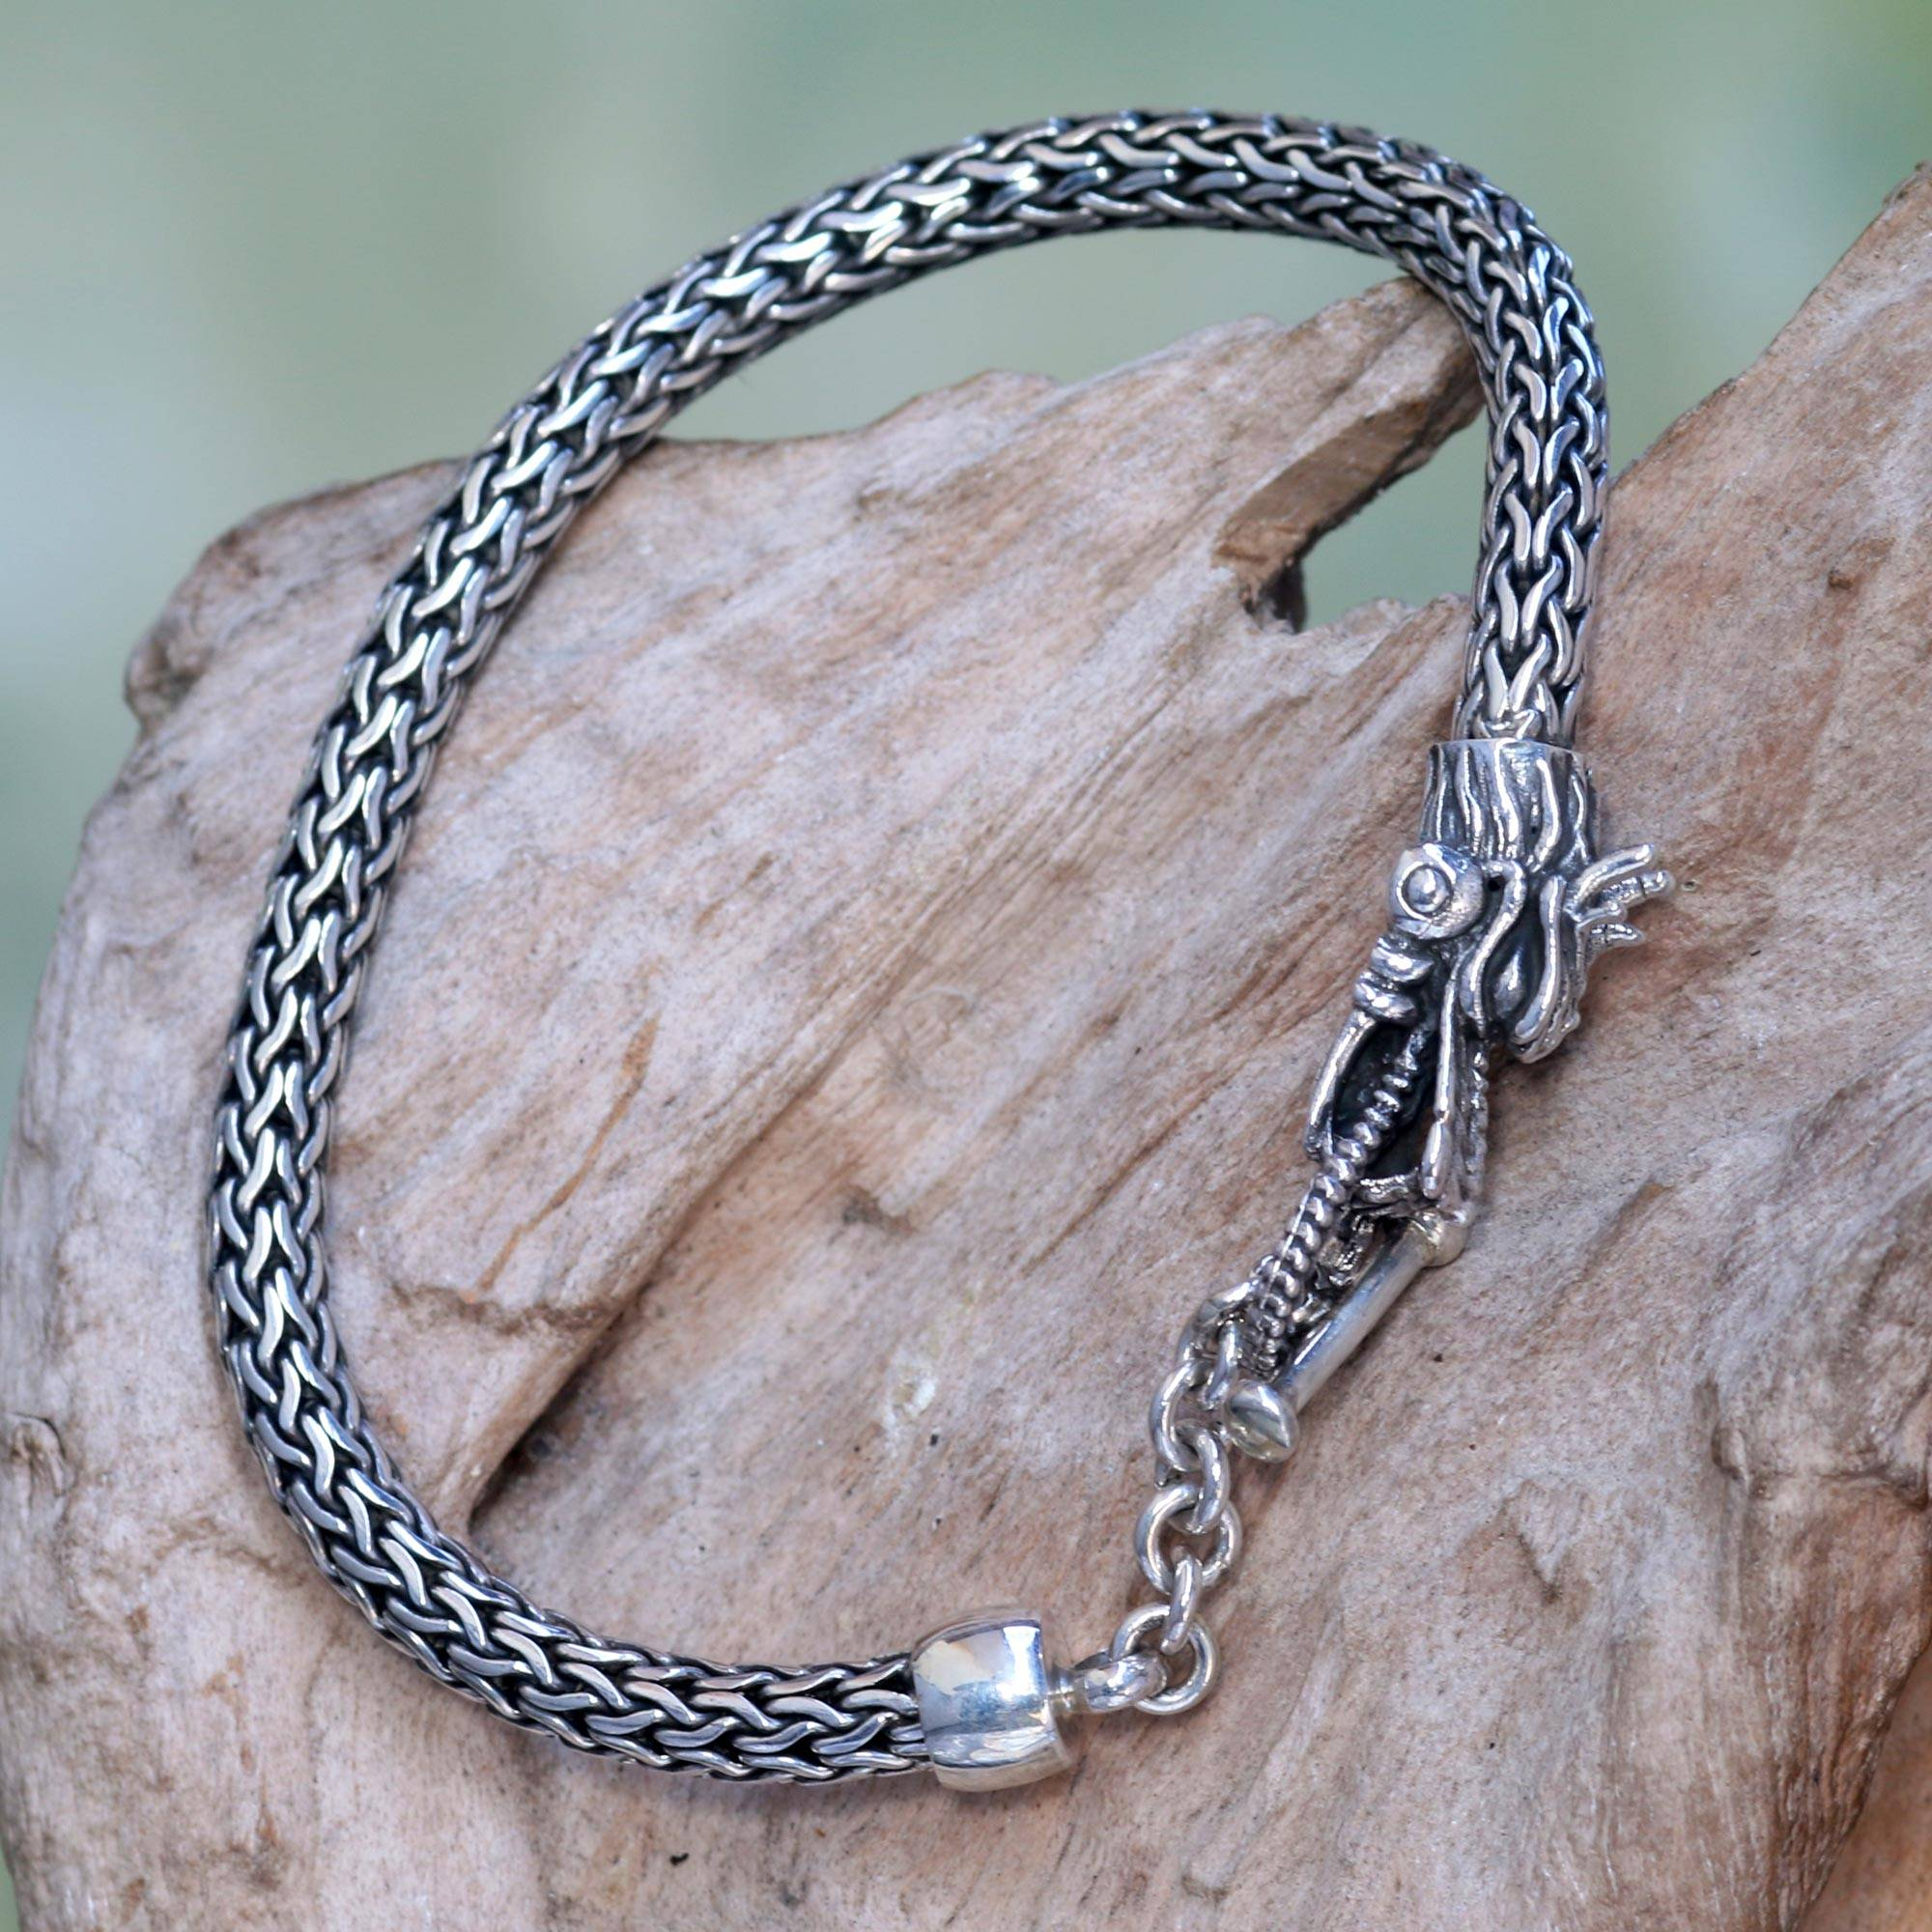 p indonesia men bracelet novica from silver chain entwine s souls sterling dragon chains mens